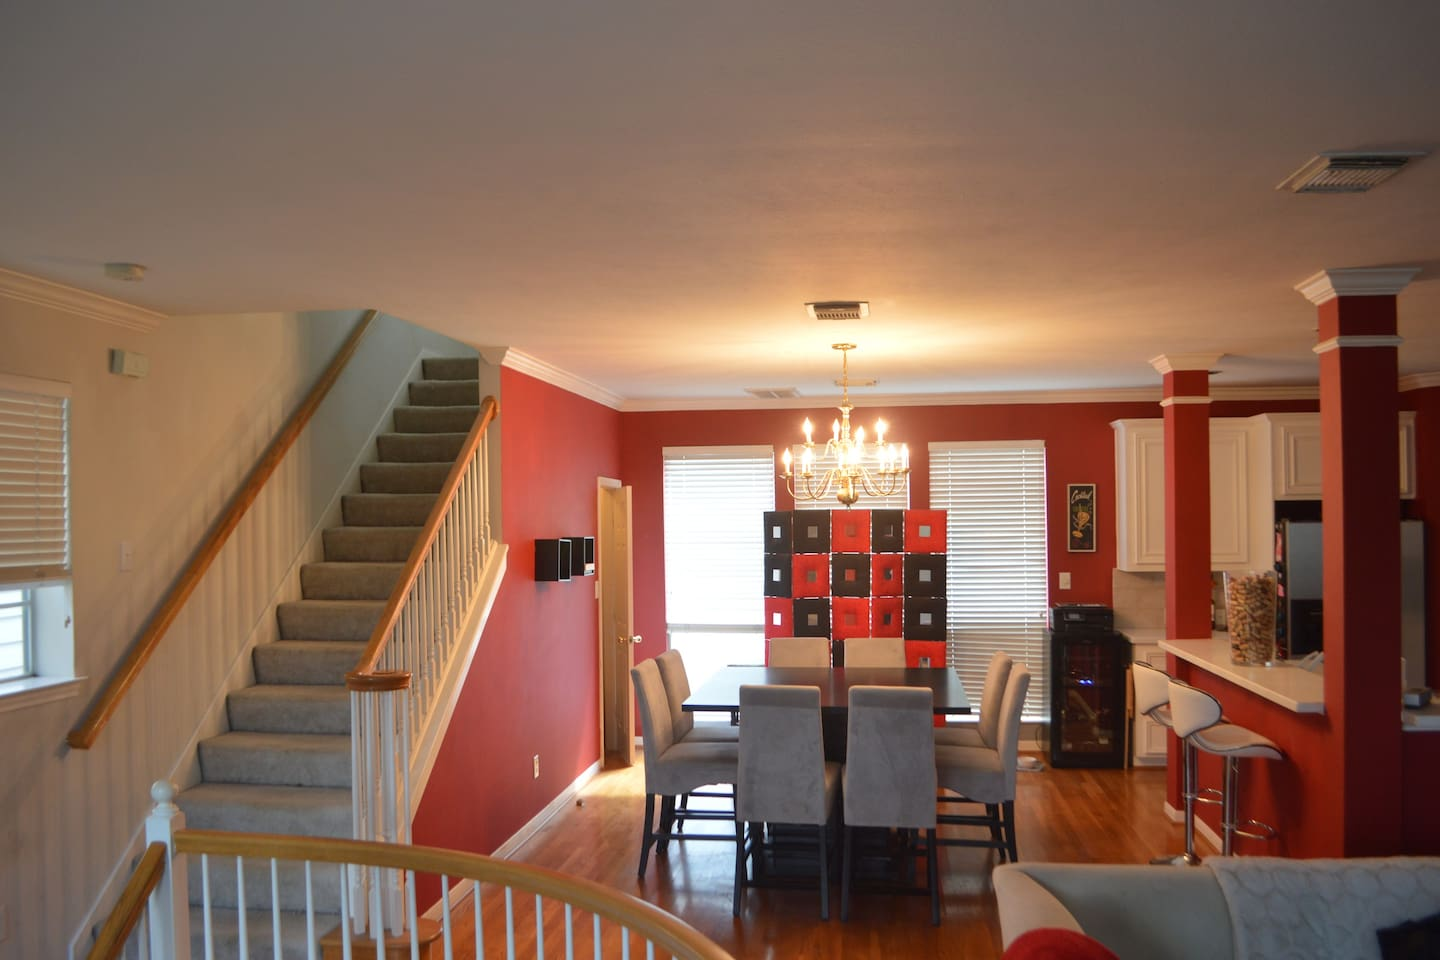 Spacious main floor (2nd floor) with plenty of room for air mattresses and furniture!